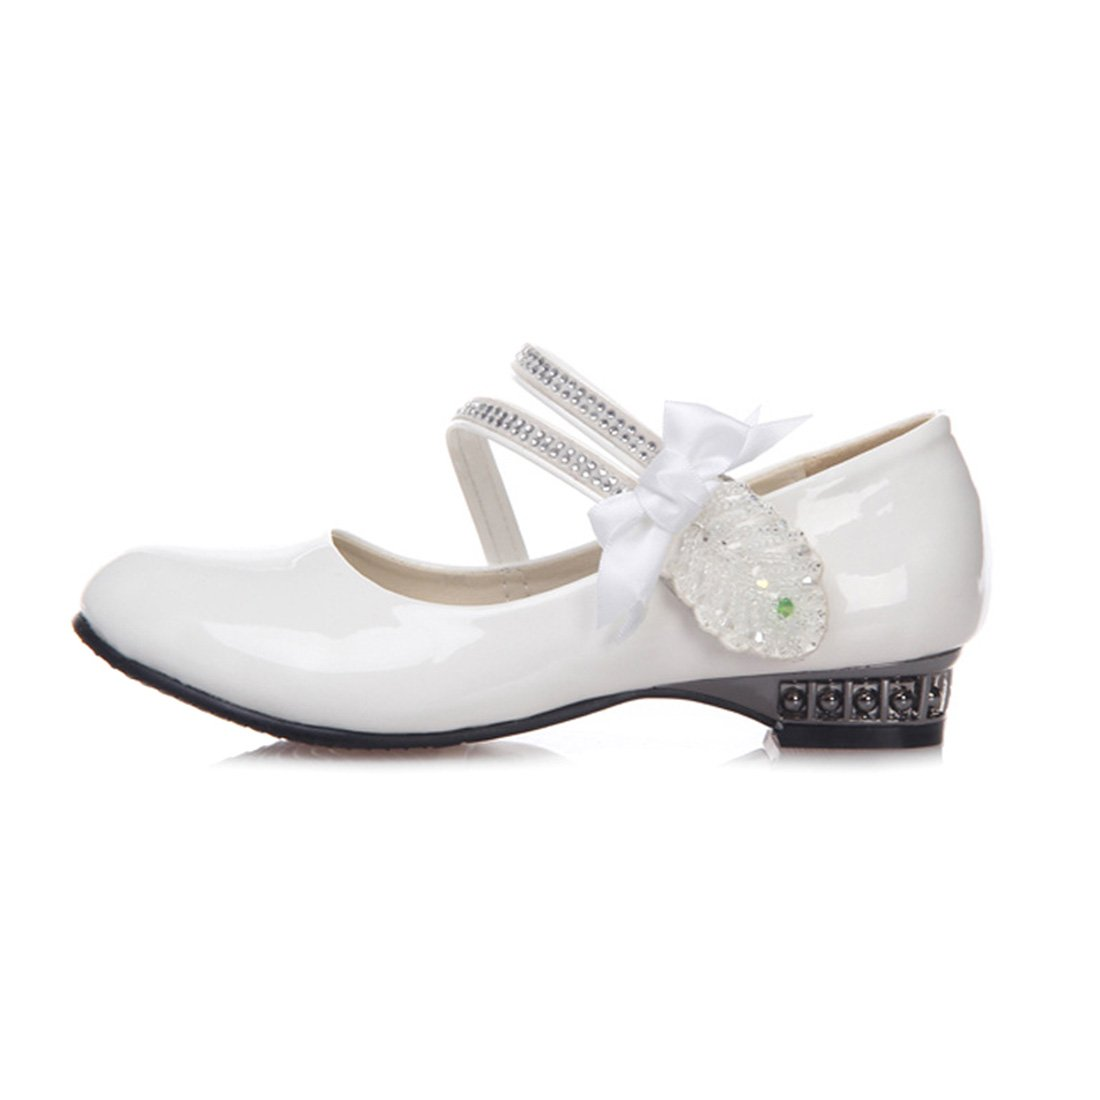 YIBLBOX Girls Kids Toddler Dress up Cosplay Princess Wedding Shoes Bowknot Crystal Mary Jane Low Heel Shoes for Girls